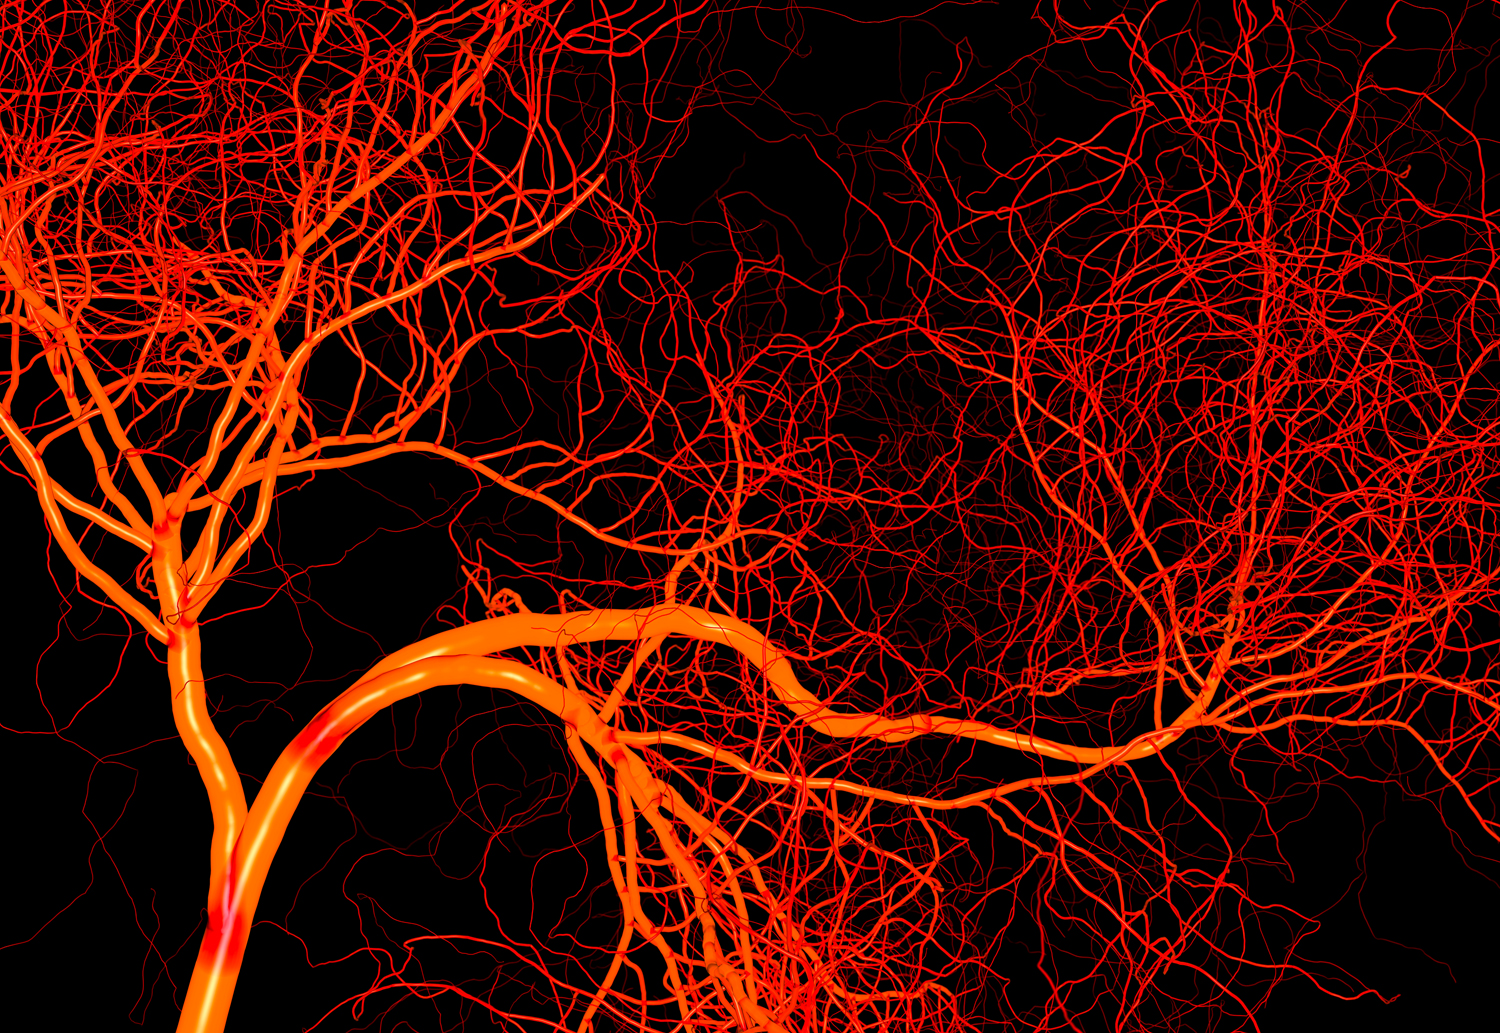 Blood Vessels The Franklin Institute